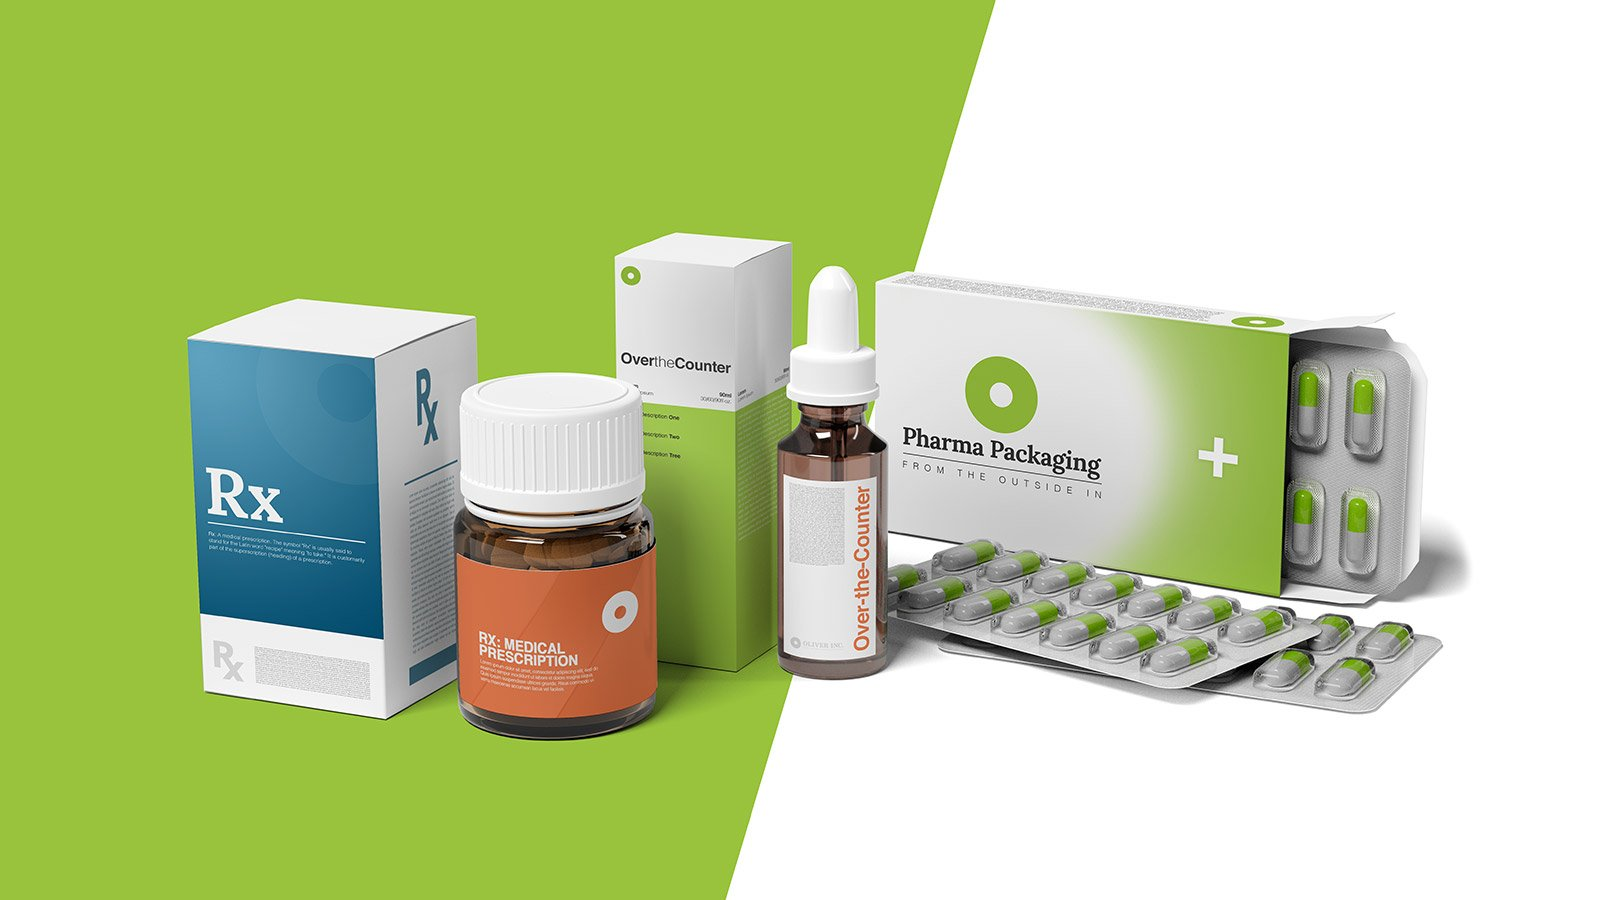 Rx to OTC: A One-Stop Solution for Pharmaceutical Packaging [W/Case Study]